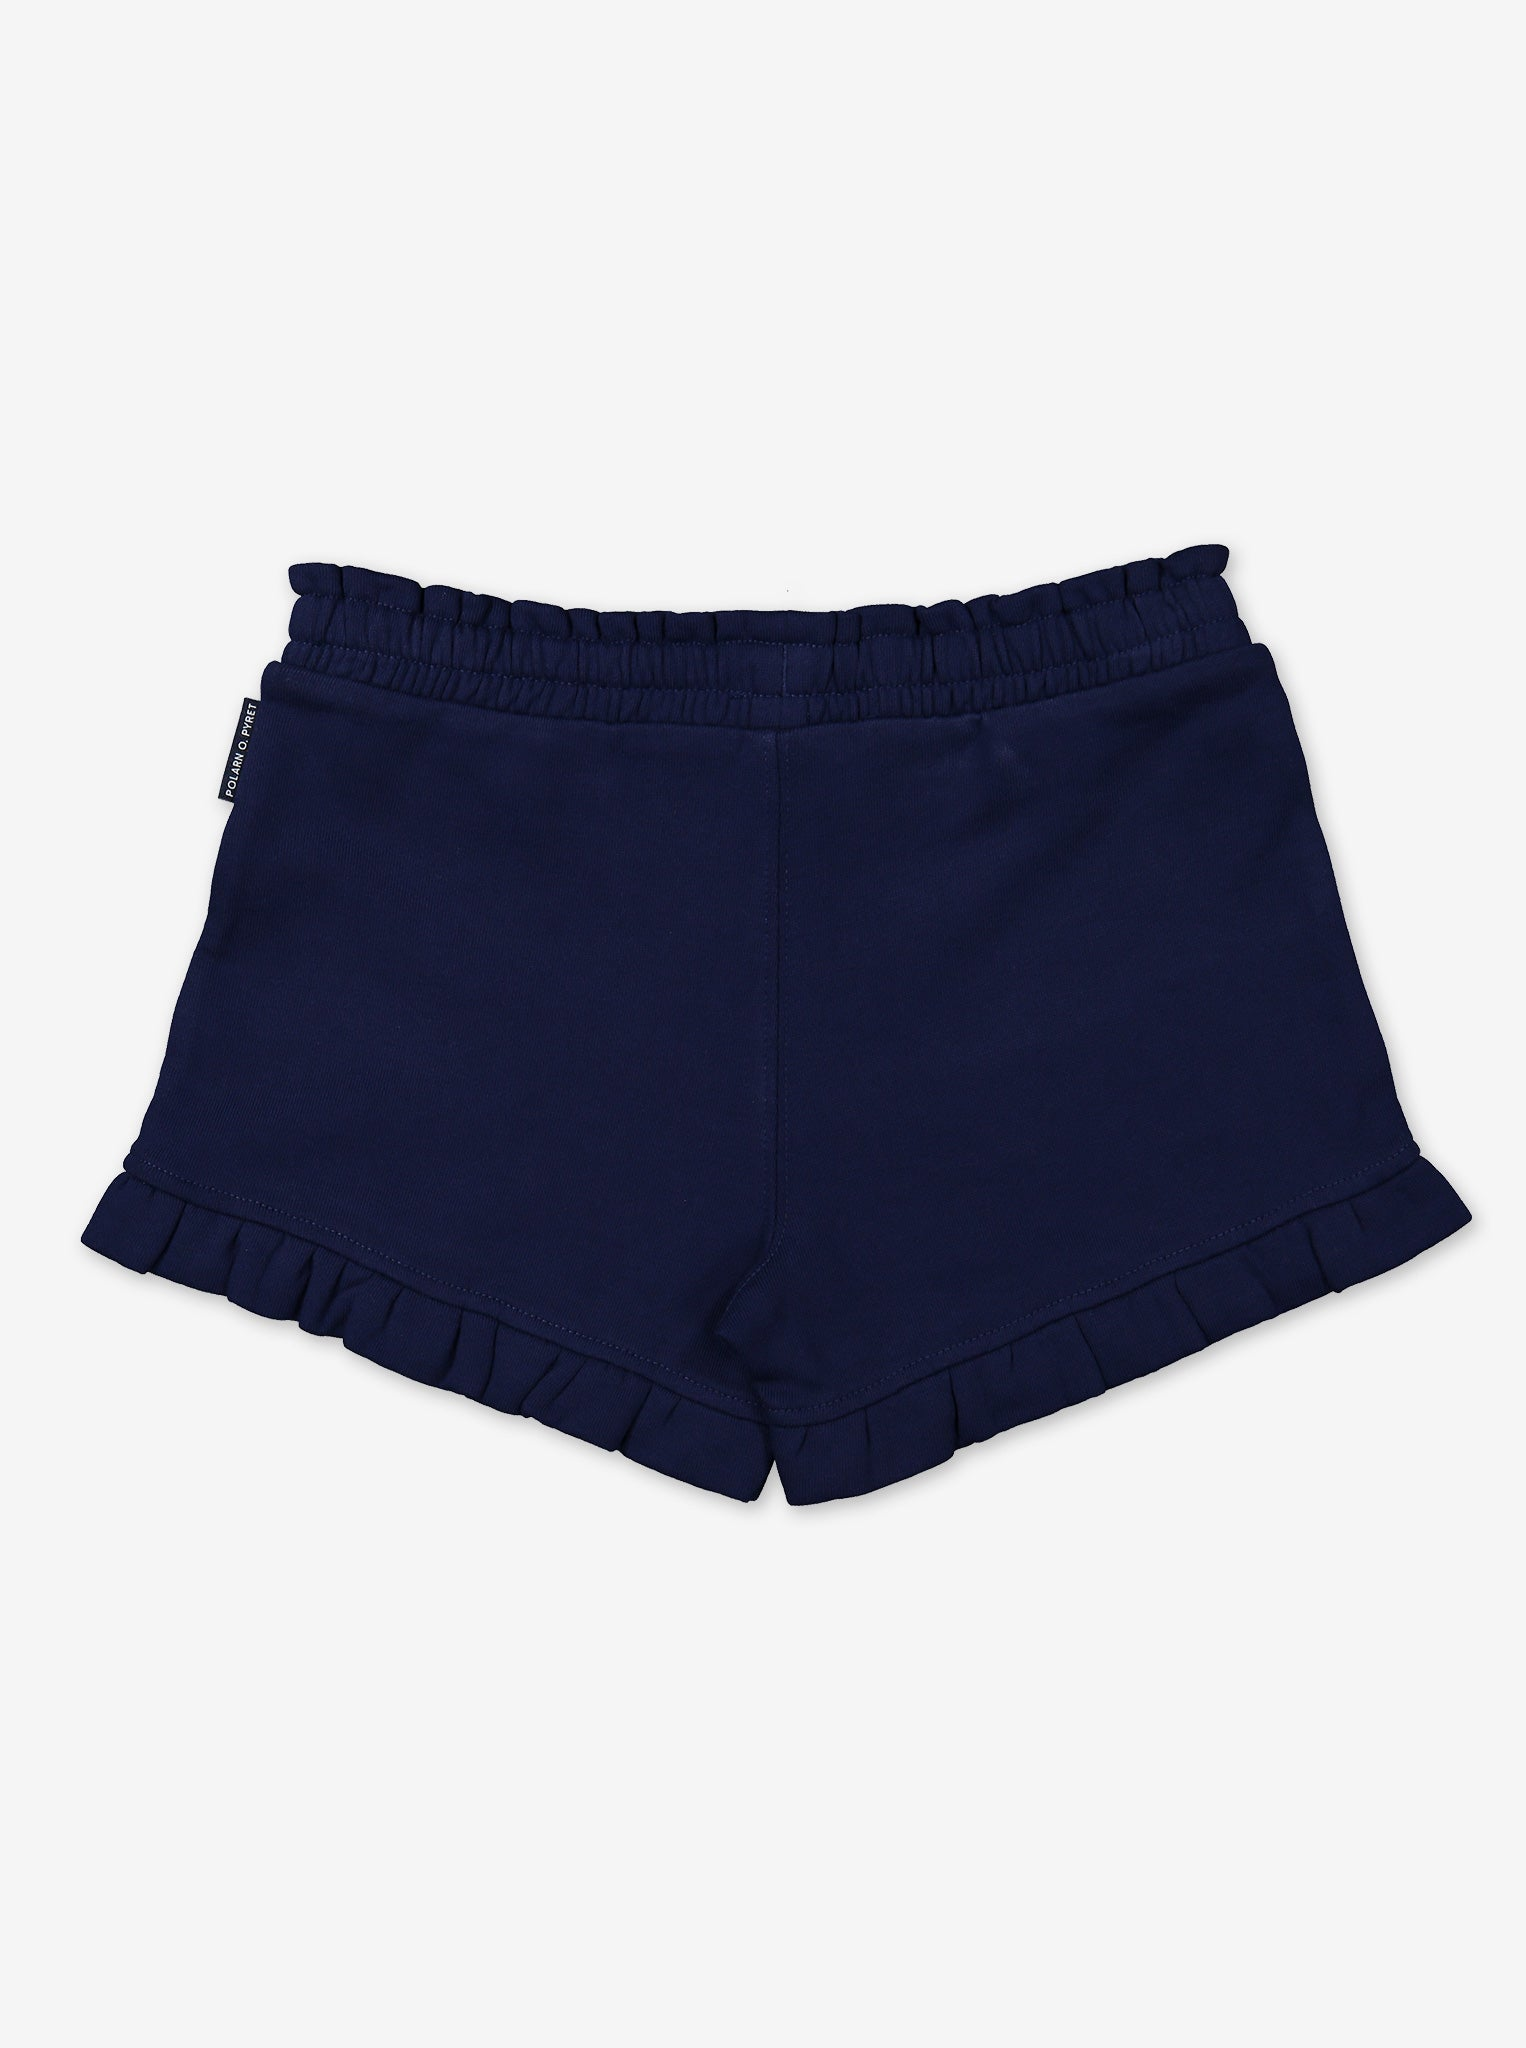 Soft Cotton Kids Shorts